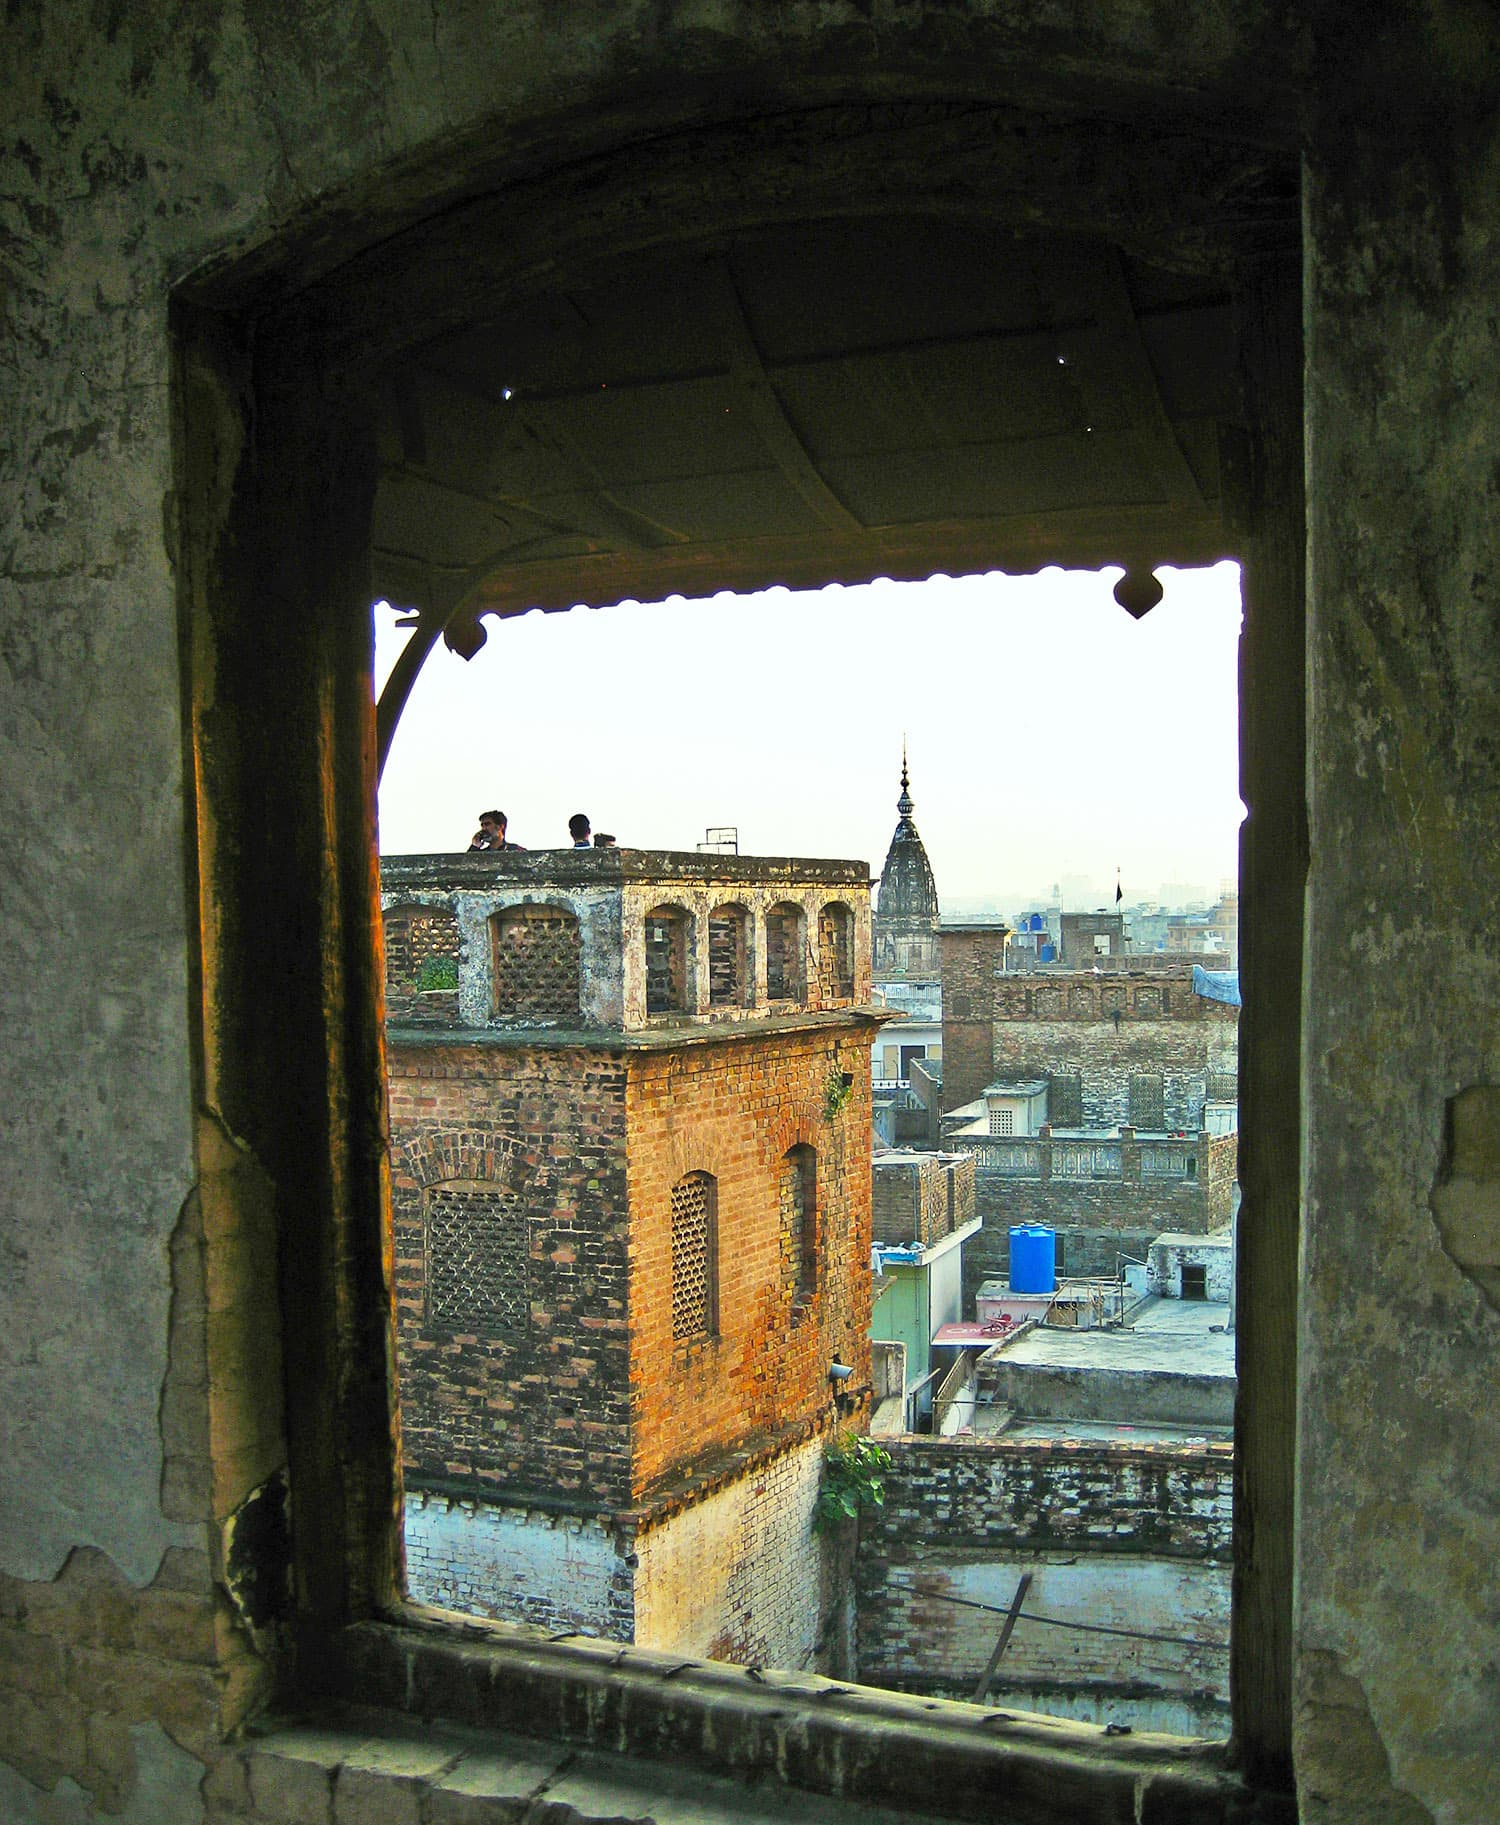 I could see the Jain temple from Sujan Singh *haveli*. Hindu and Sikh families who have migrated still visit this neigbourhood.